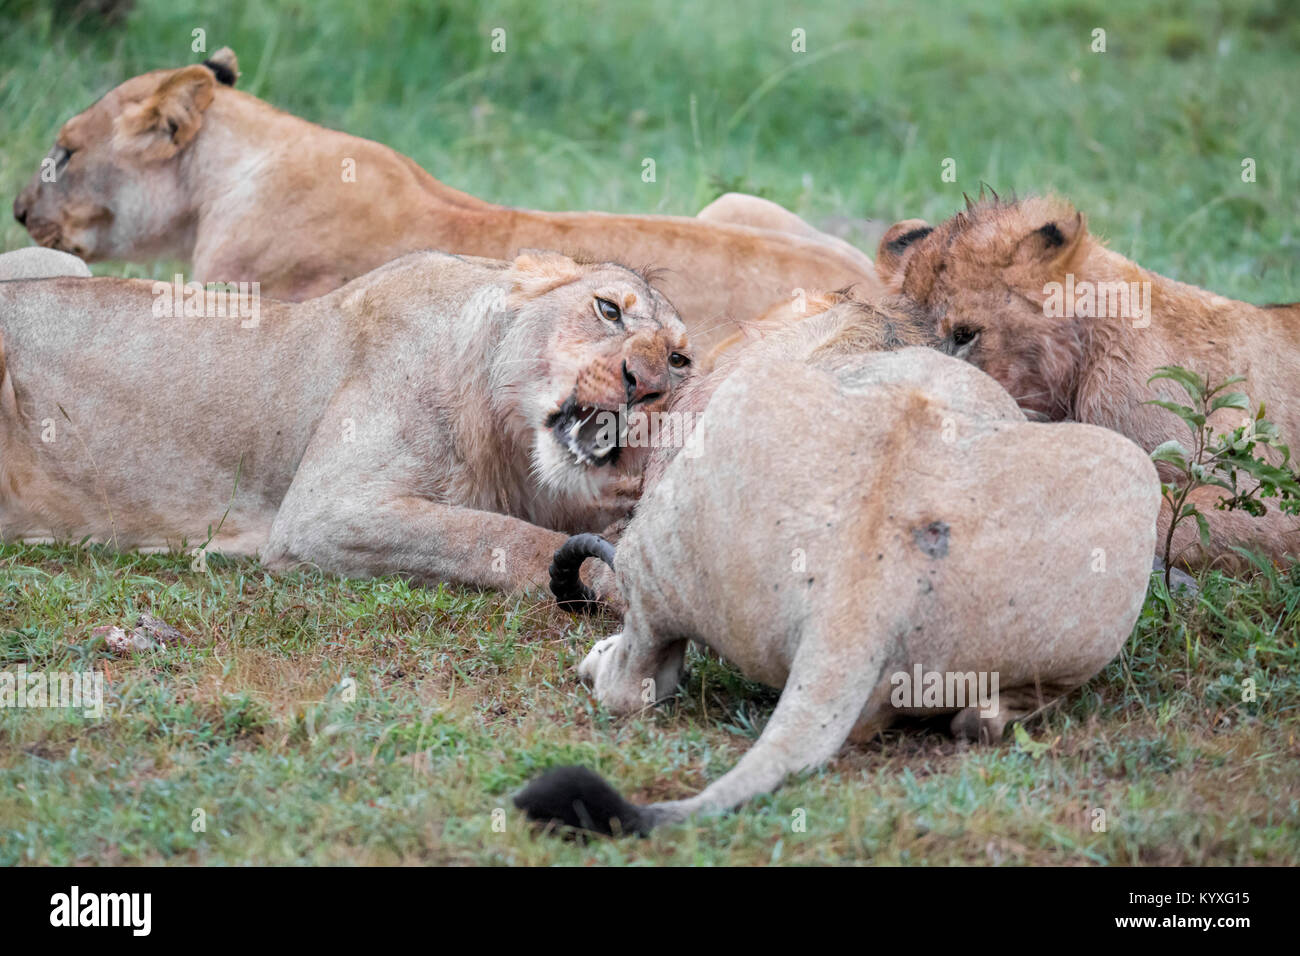 A pride of lions feeding on a kill, one female snarling, early morning, high ISO image, Valley camp Mara Naboisho Stock Photo